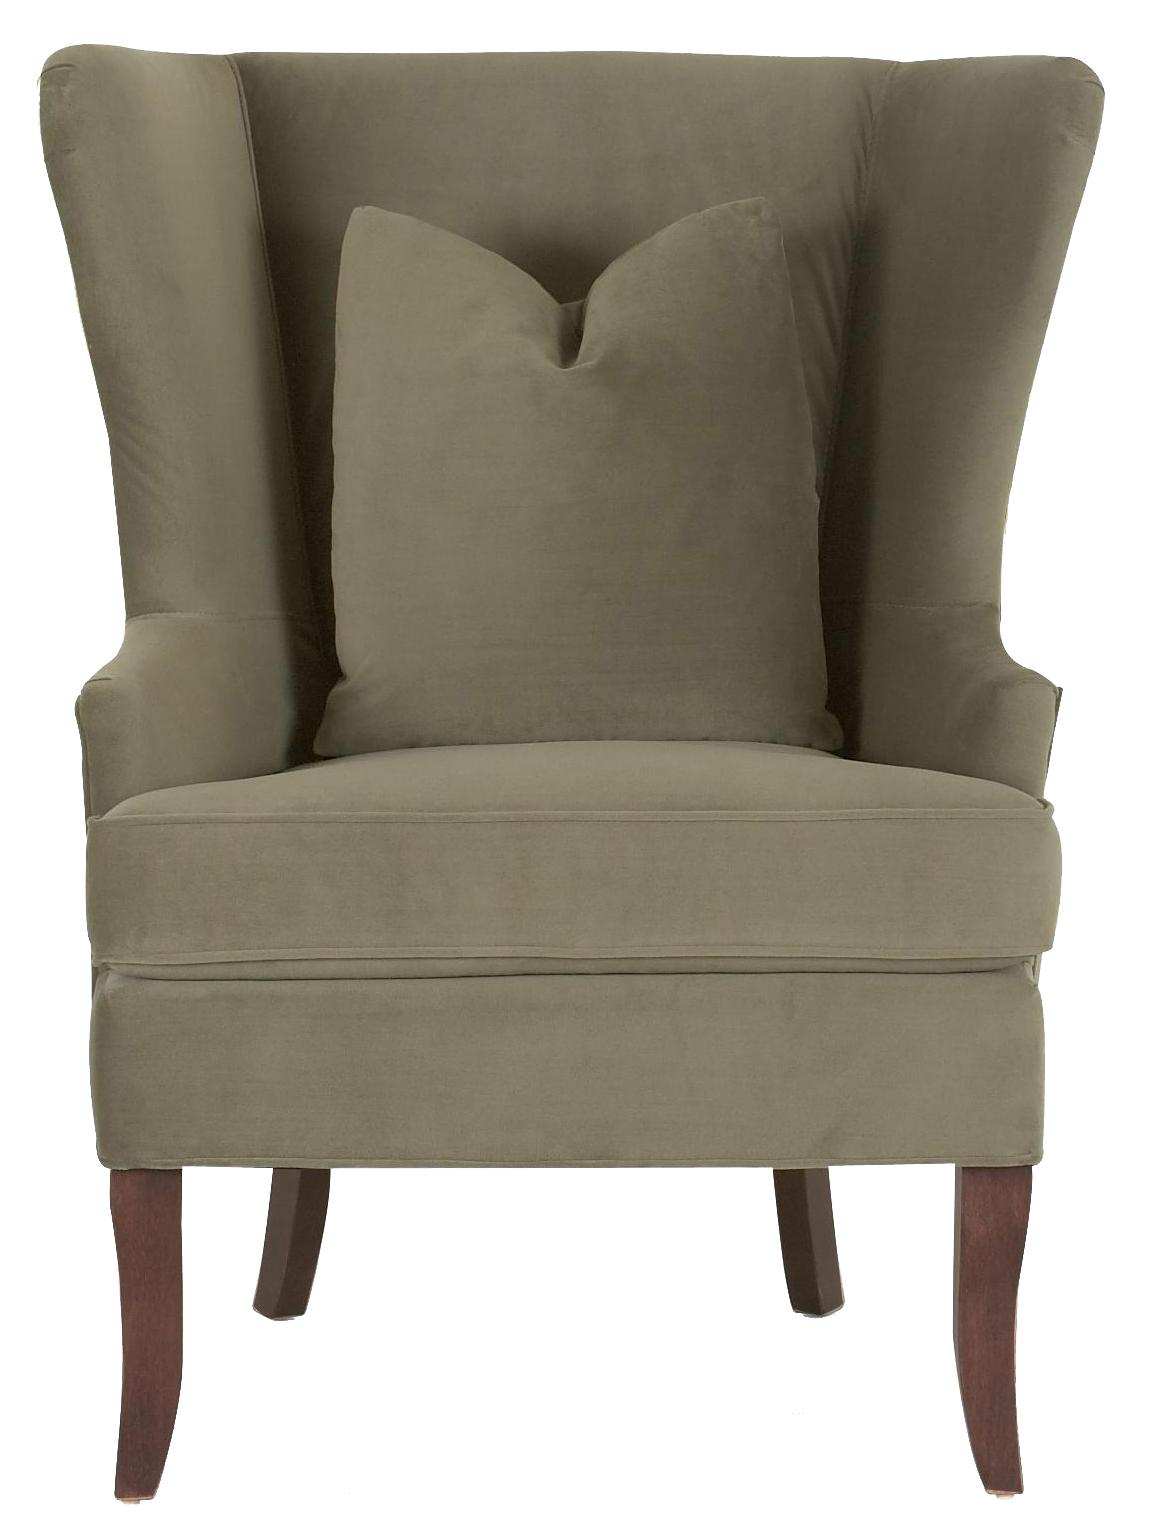 Klaussner Chairs and Accents Serenity Chair with Down Blend Cushions - Item Number: DB27500 C